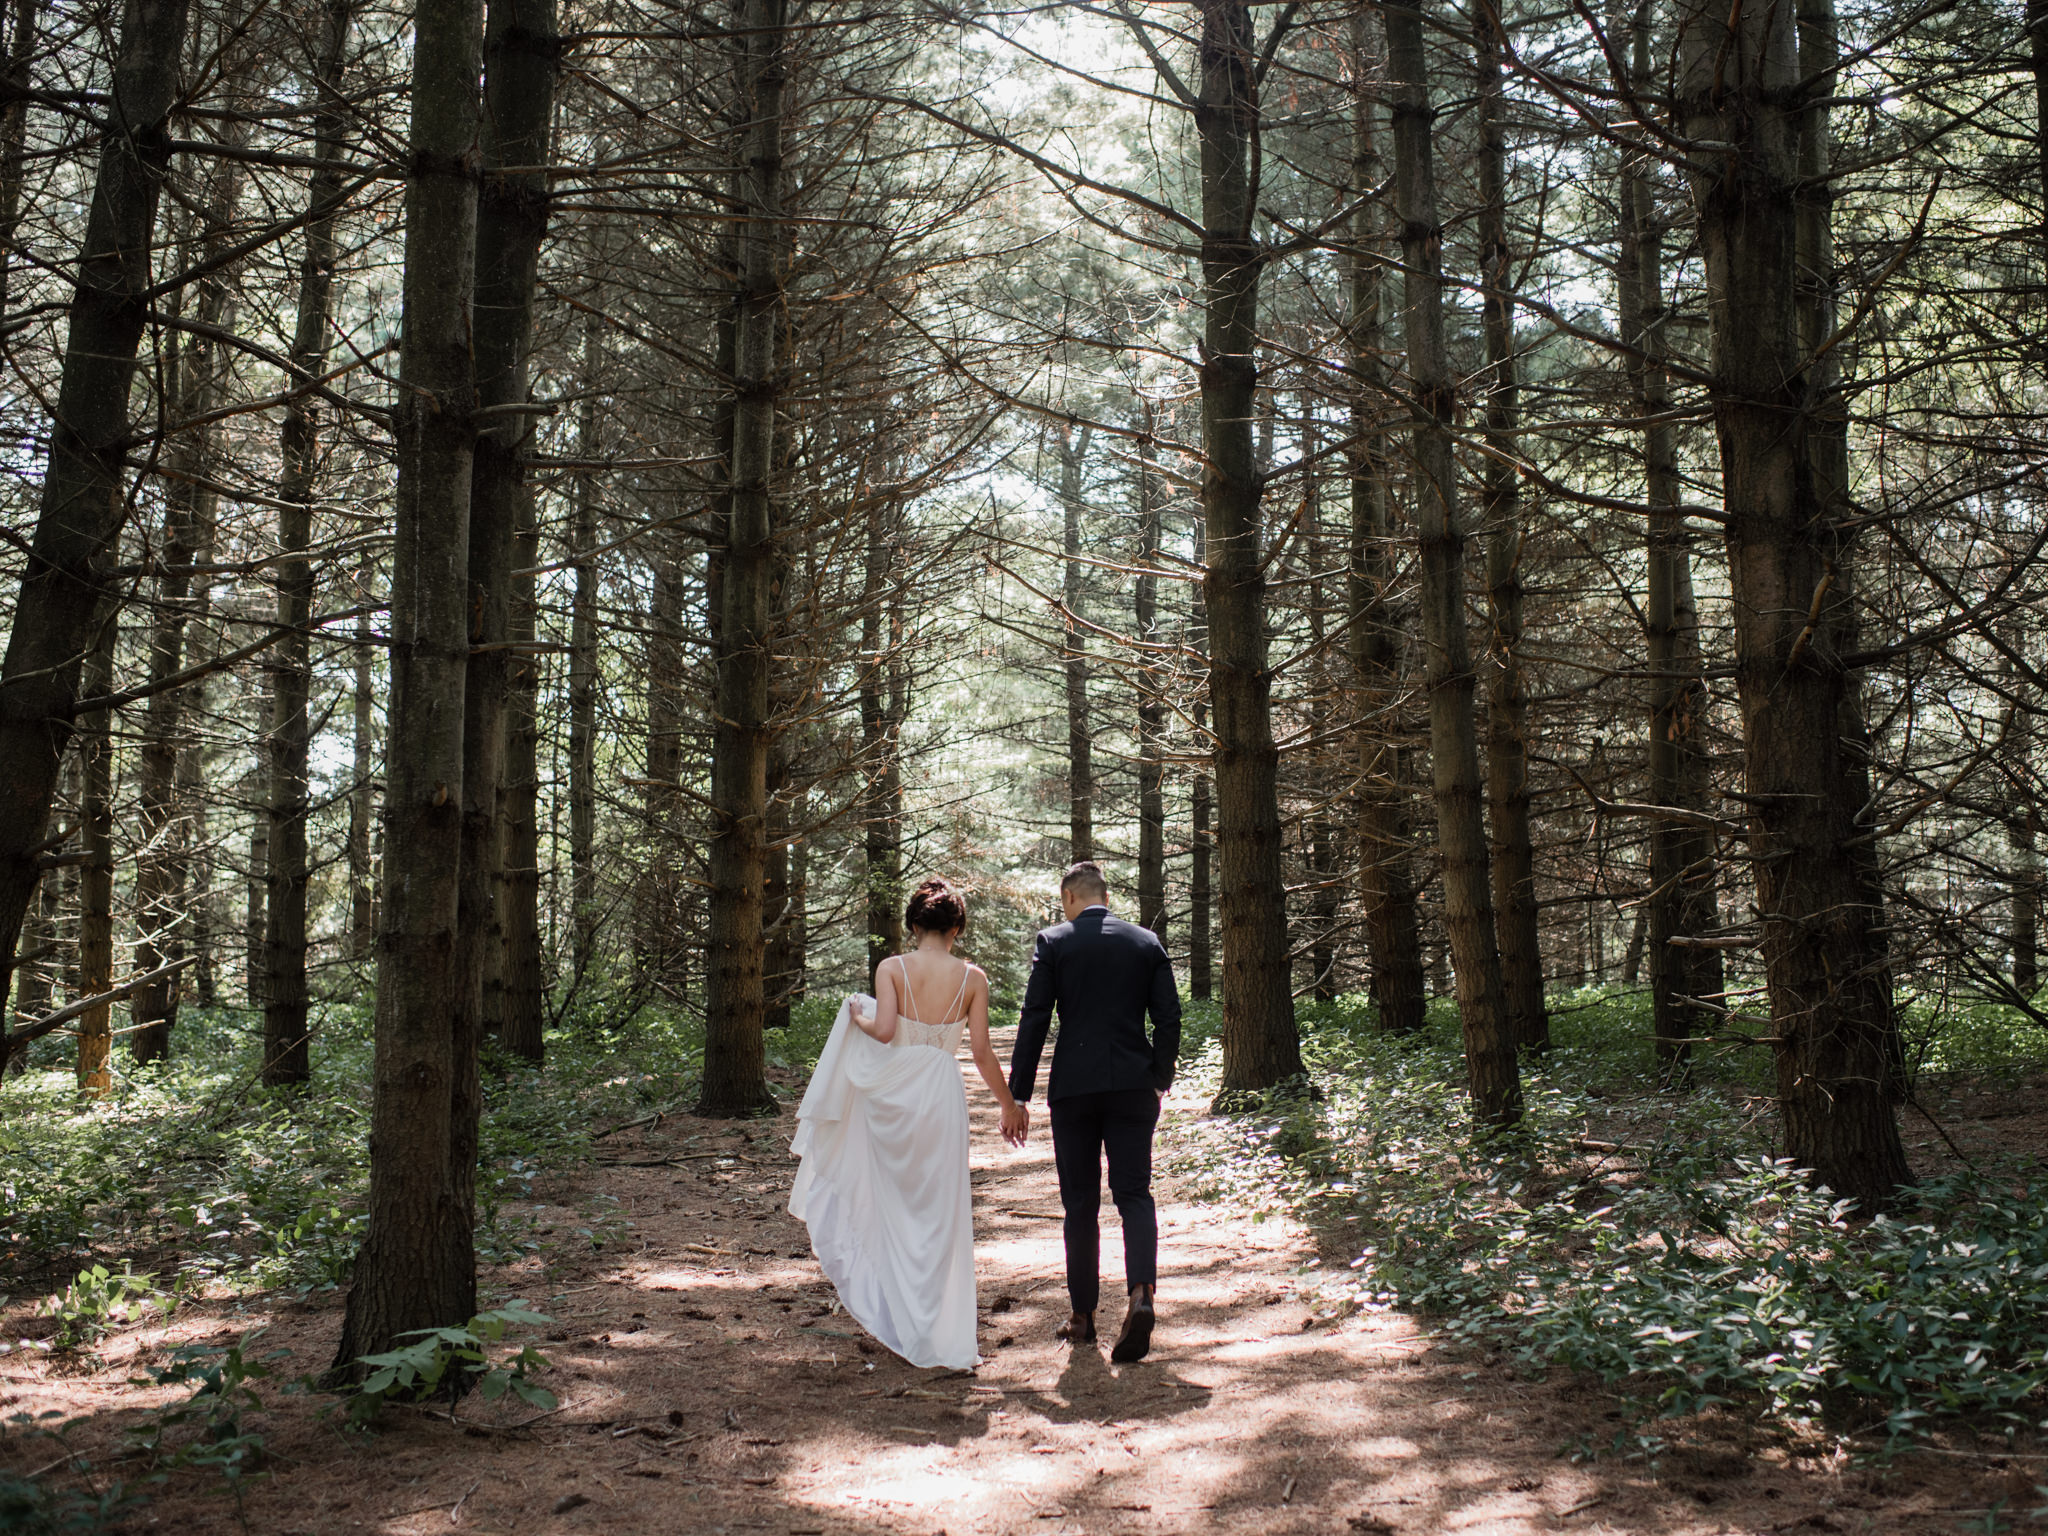 Wedding portraits of bride and groom in forest